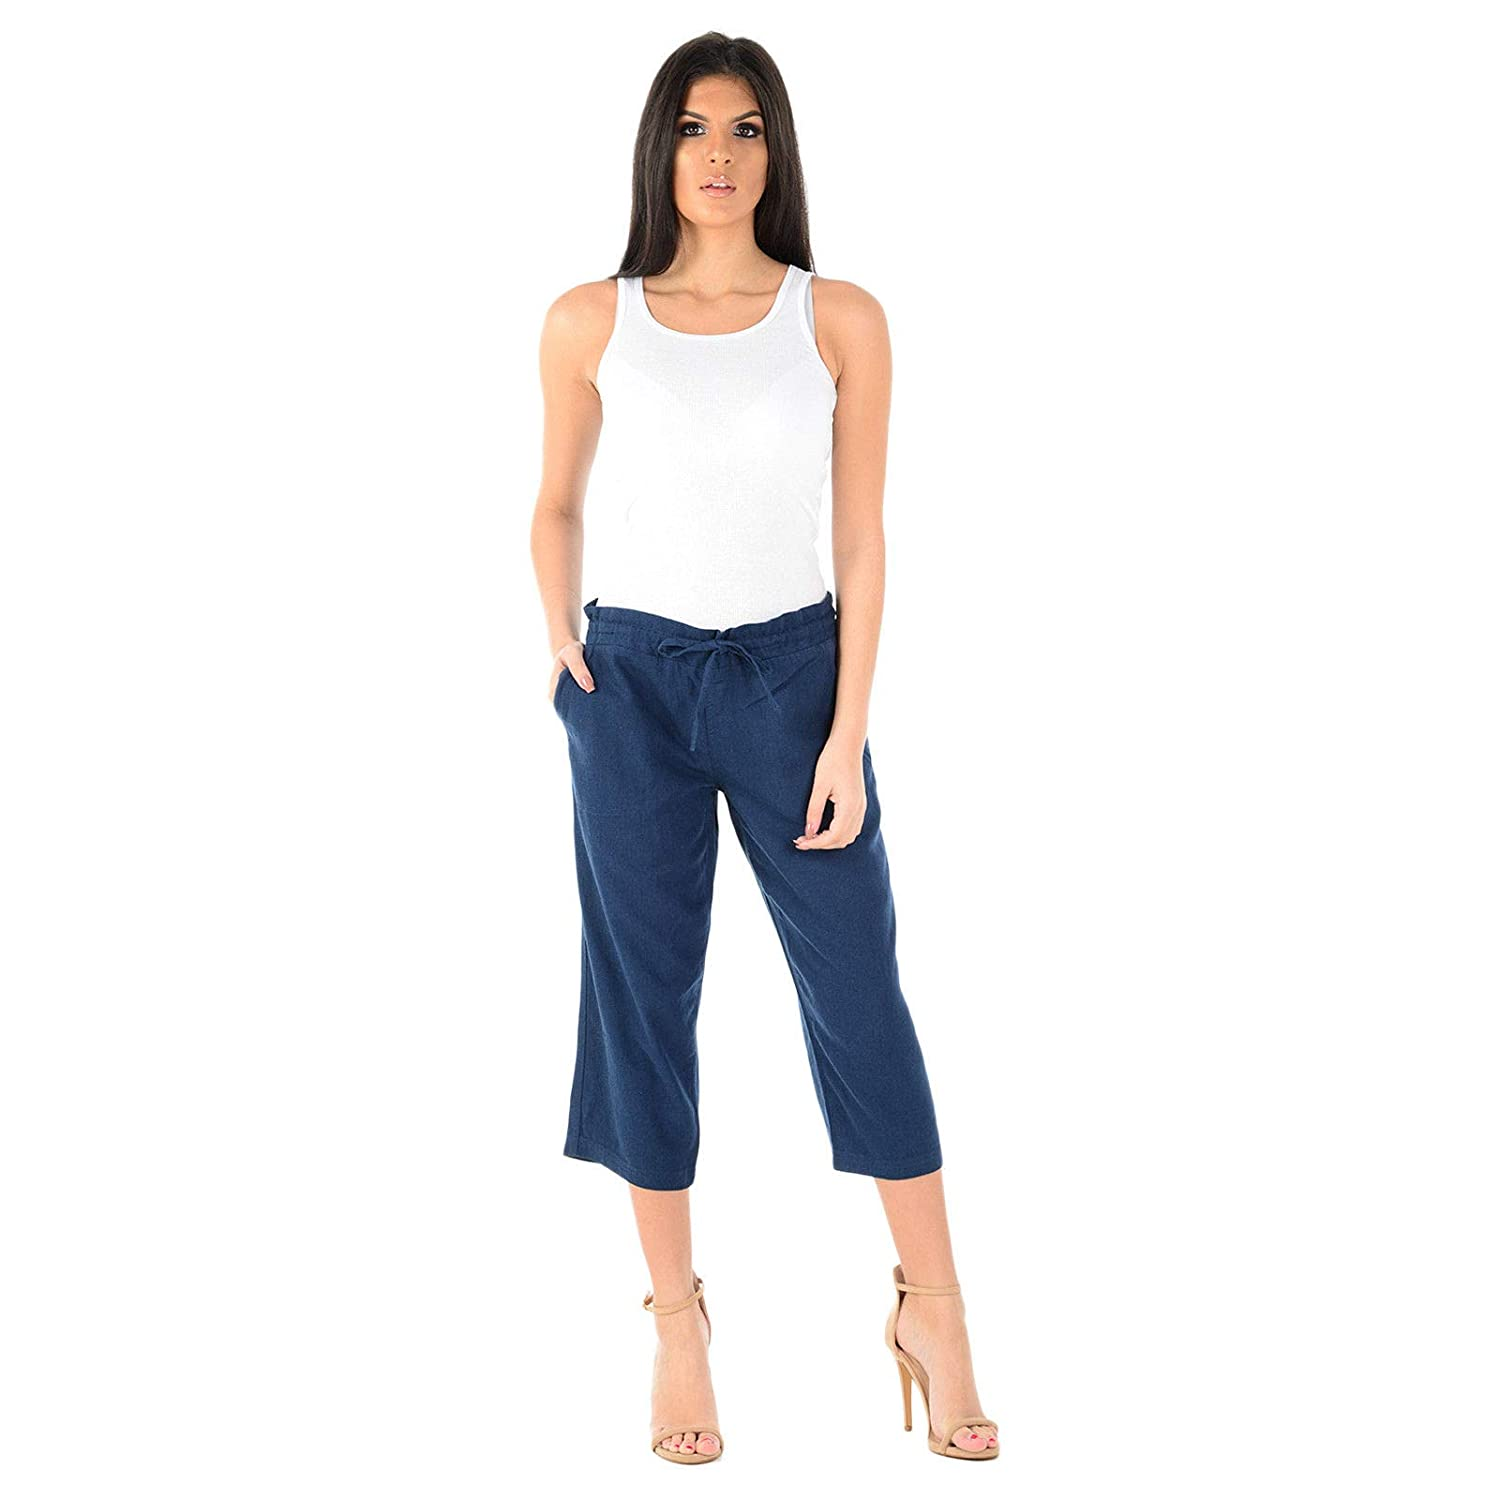 LADIES WOMENS ELASTICATED WAIST THREE QUARTER 3//4 CAPRI CROPPED PANTS TROUSERS